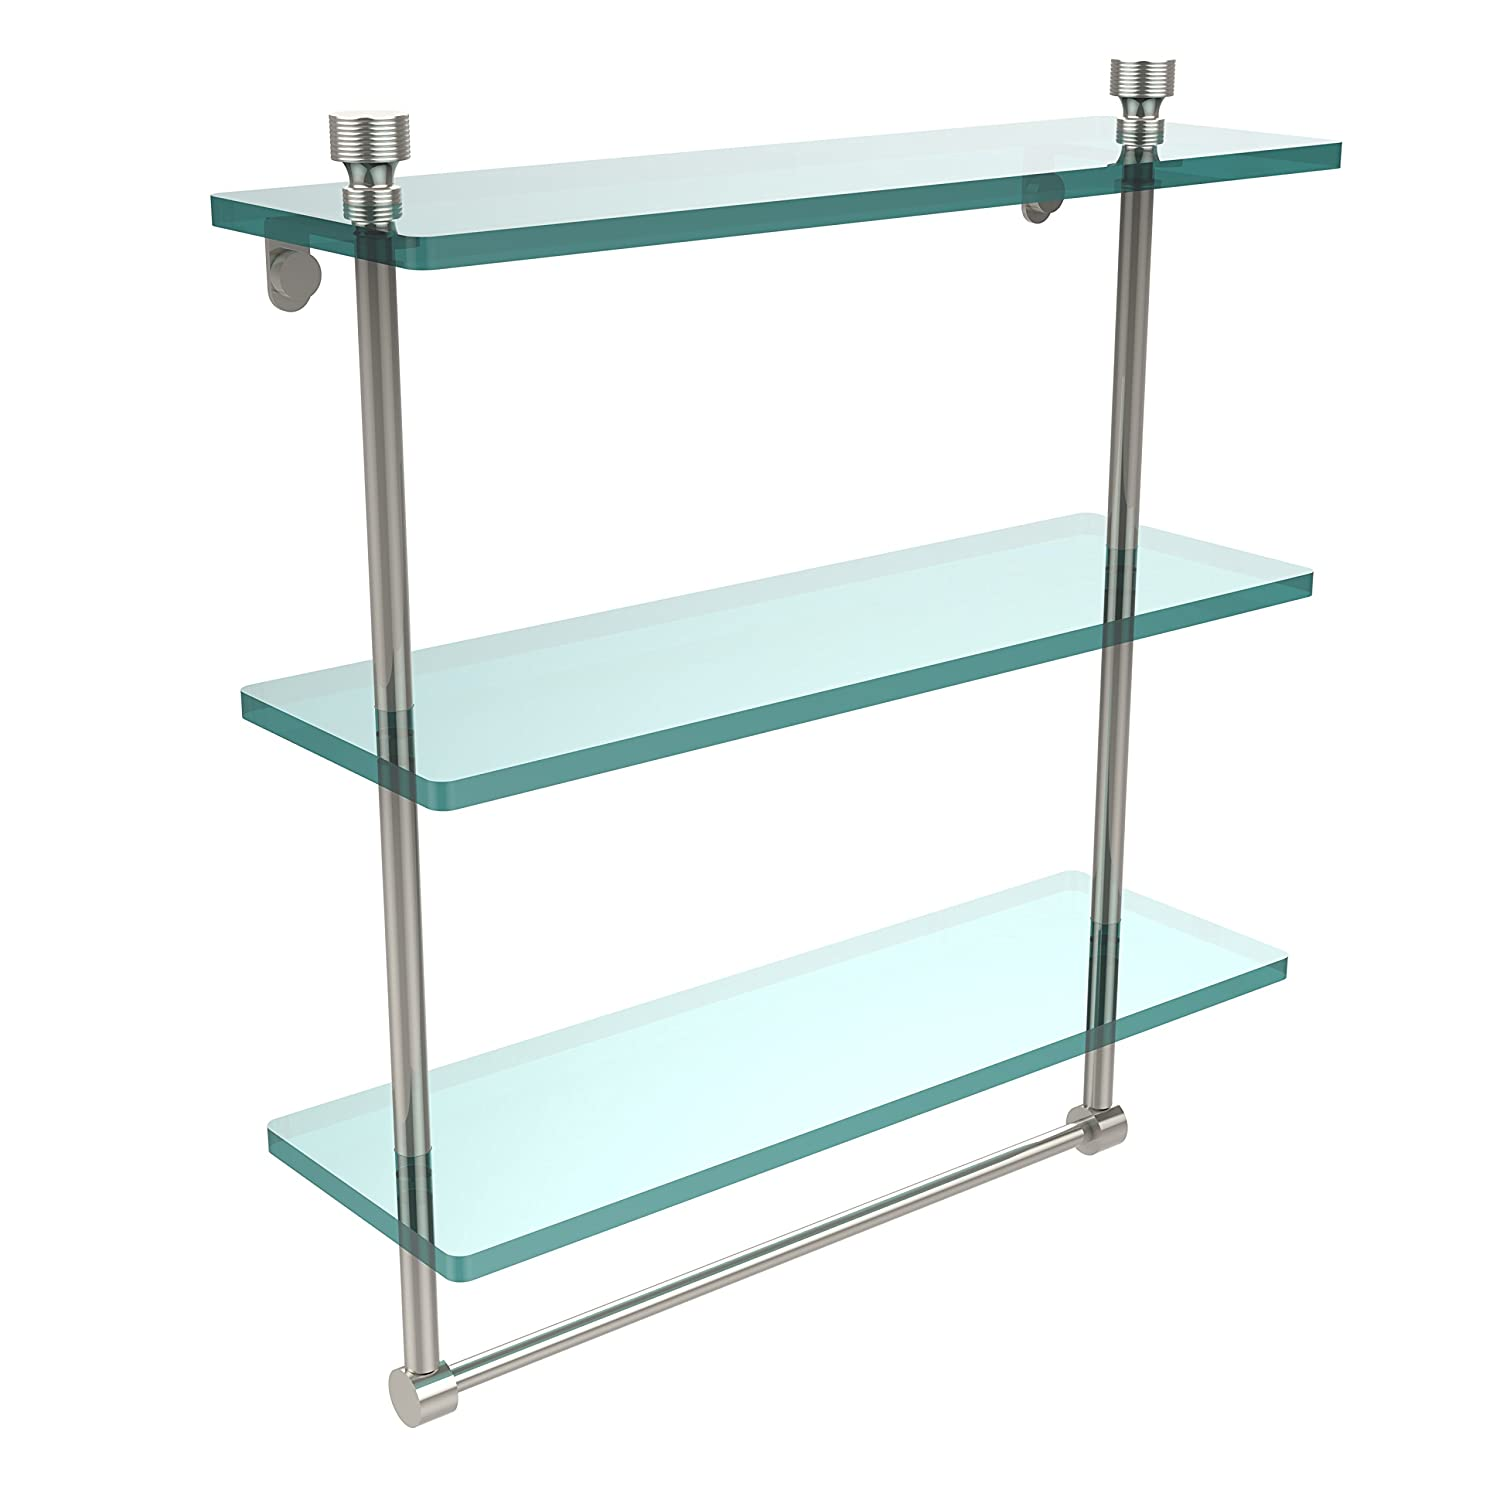 Allied Brass FT-5/16TB-PNI 16 Triple Glass Shelf w/TB Polished Nickel by Allied Brass B004J4NWAS 光沢ニッケル 光沢ニッケル